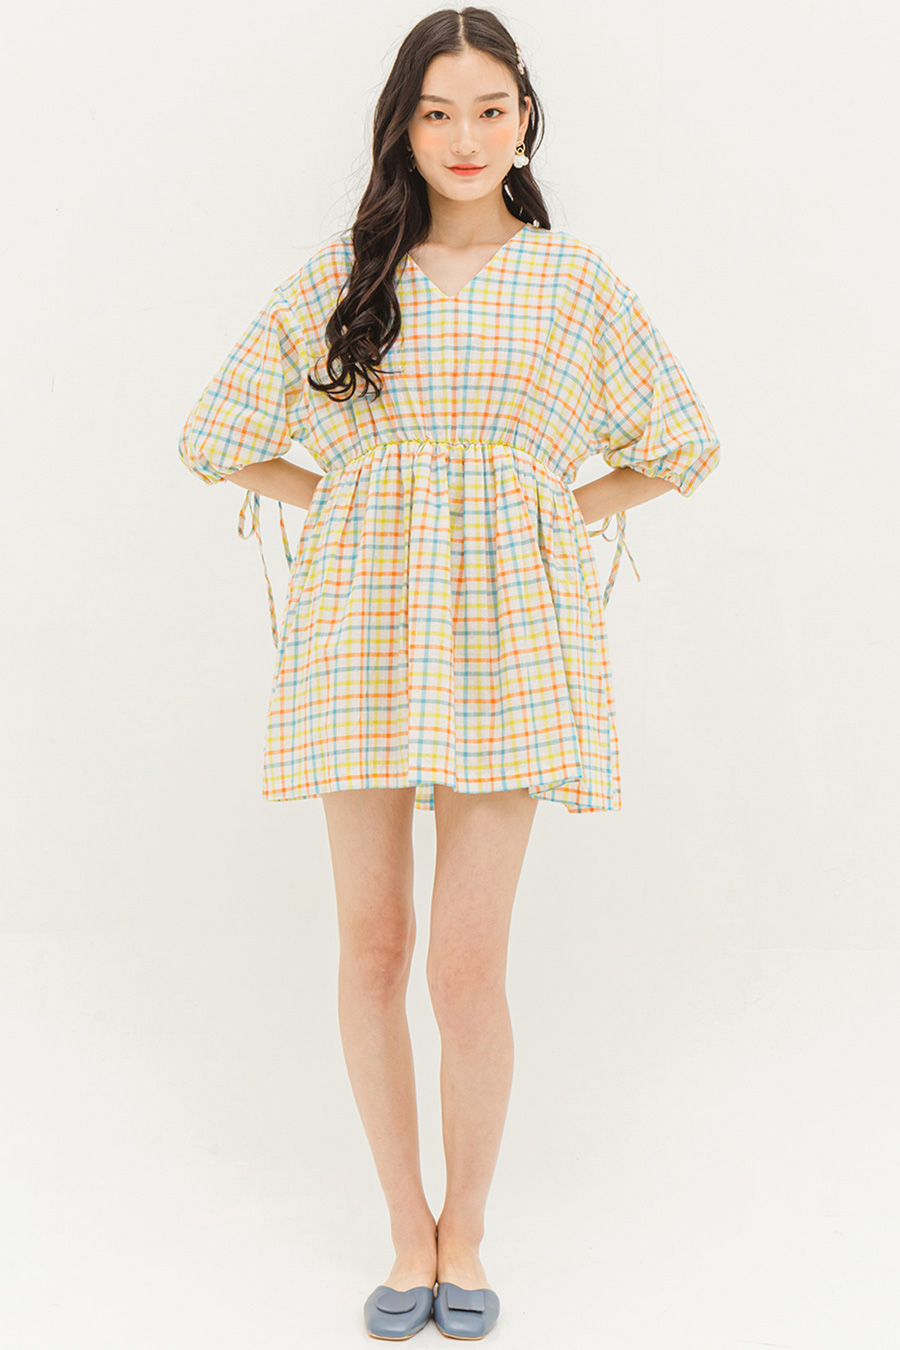 GRACIE DRESS - MADRAS